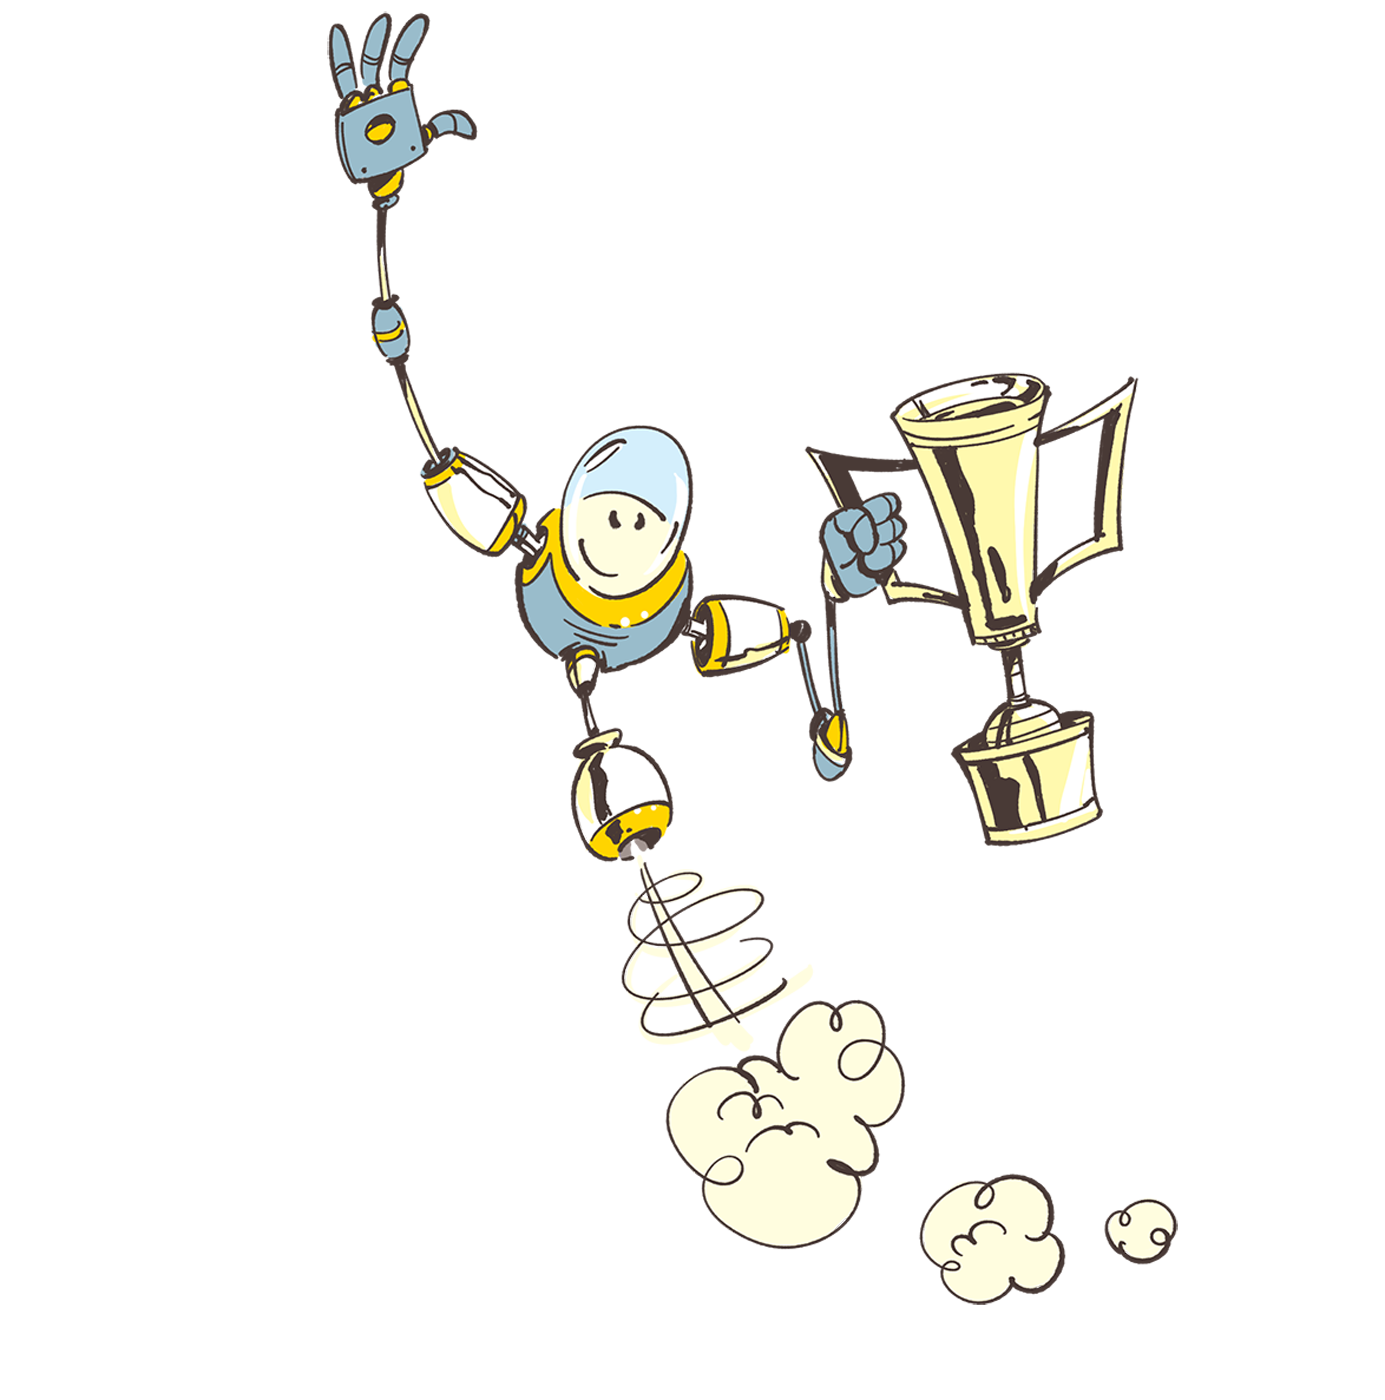 AZR0 robot with champion cup - illustration by Cesare Asaro